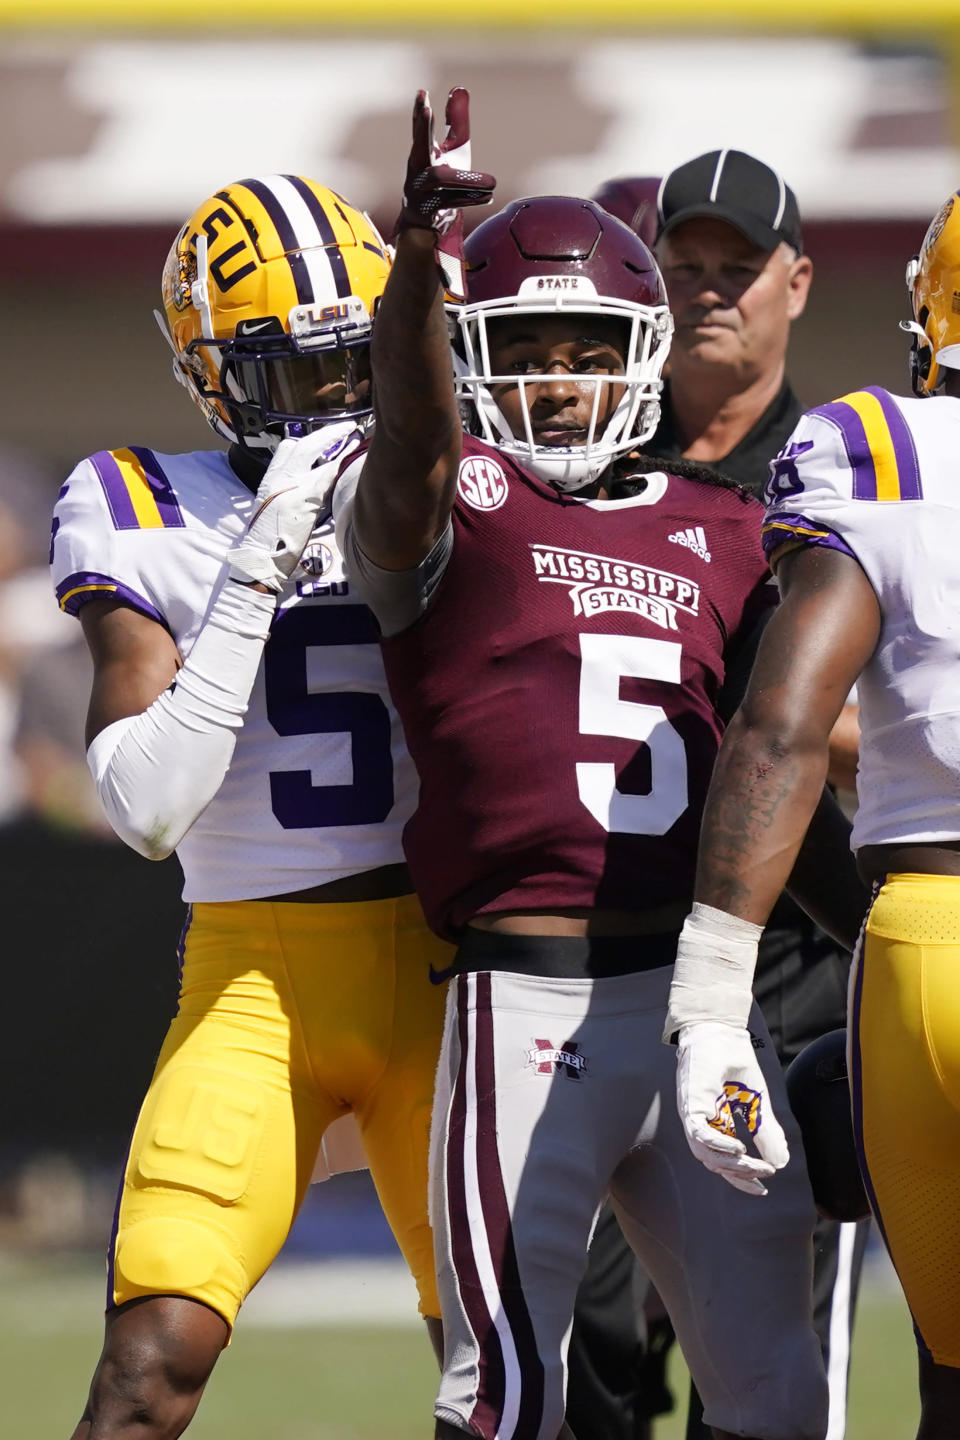 Mississippi State wide receiver Lideatrick Griffin (5) stands amid LSU defenders and gestures after catching a pass for a first down during the first half of an NCAA college football game, Saturday, Sept. 25, 2021, in Starkville, Miss. (AP Photo/Rogelio V. Solis)